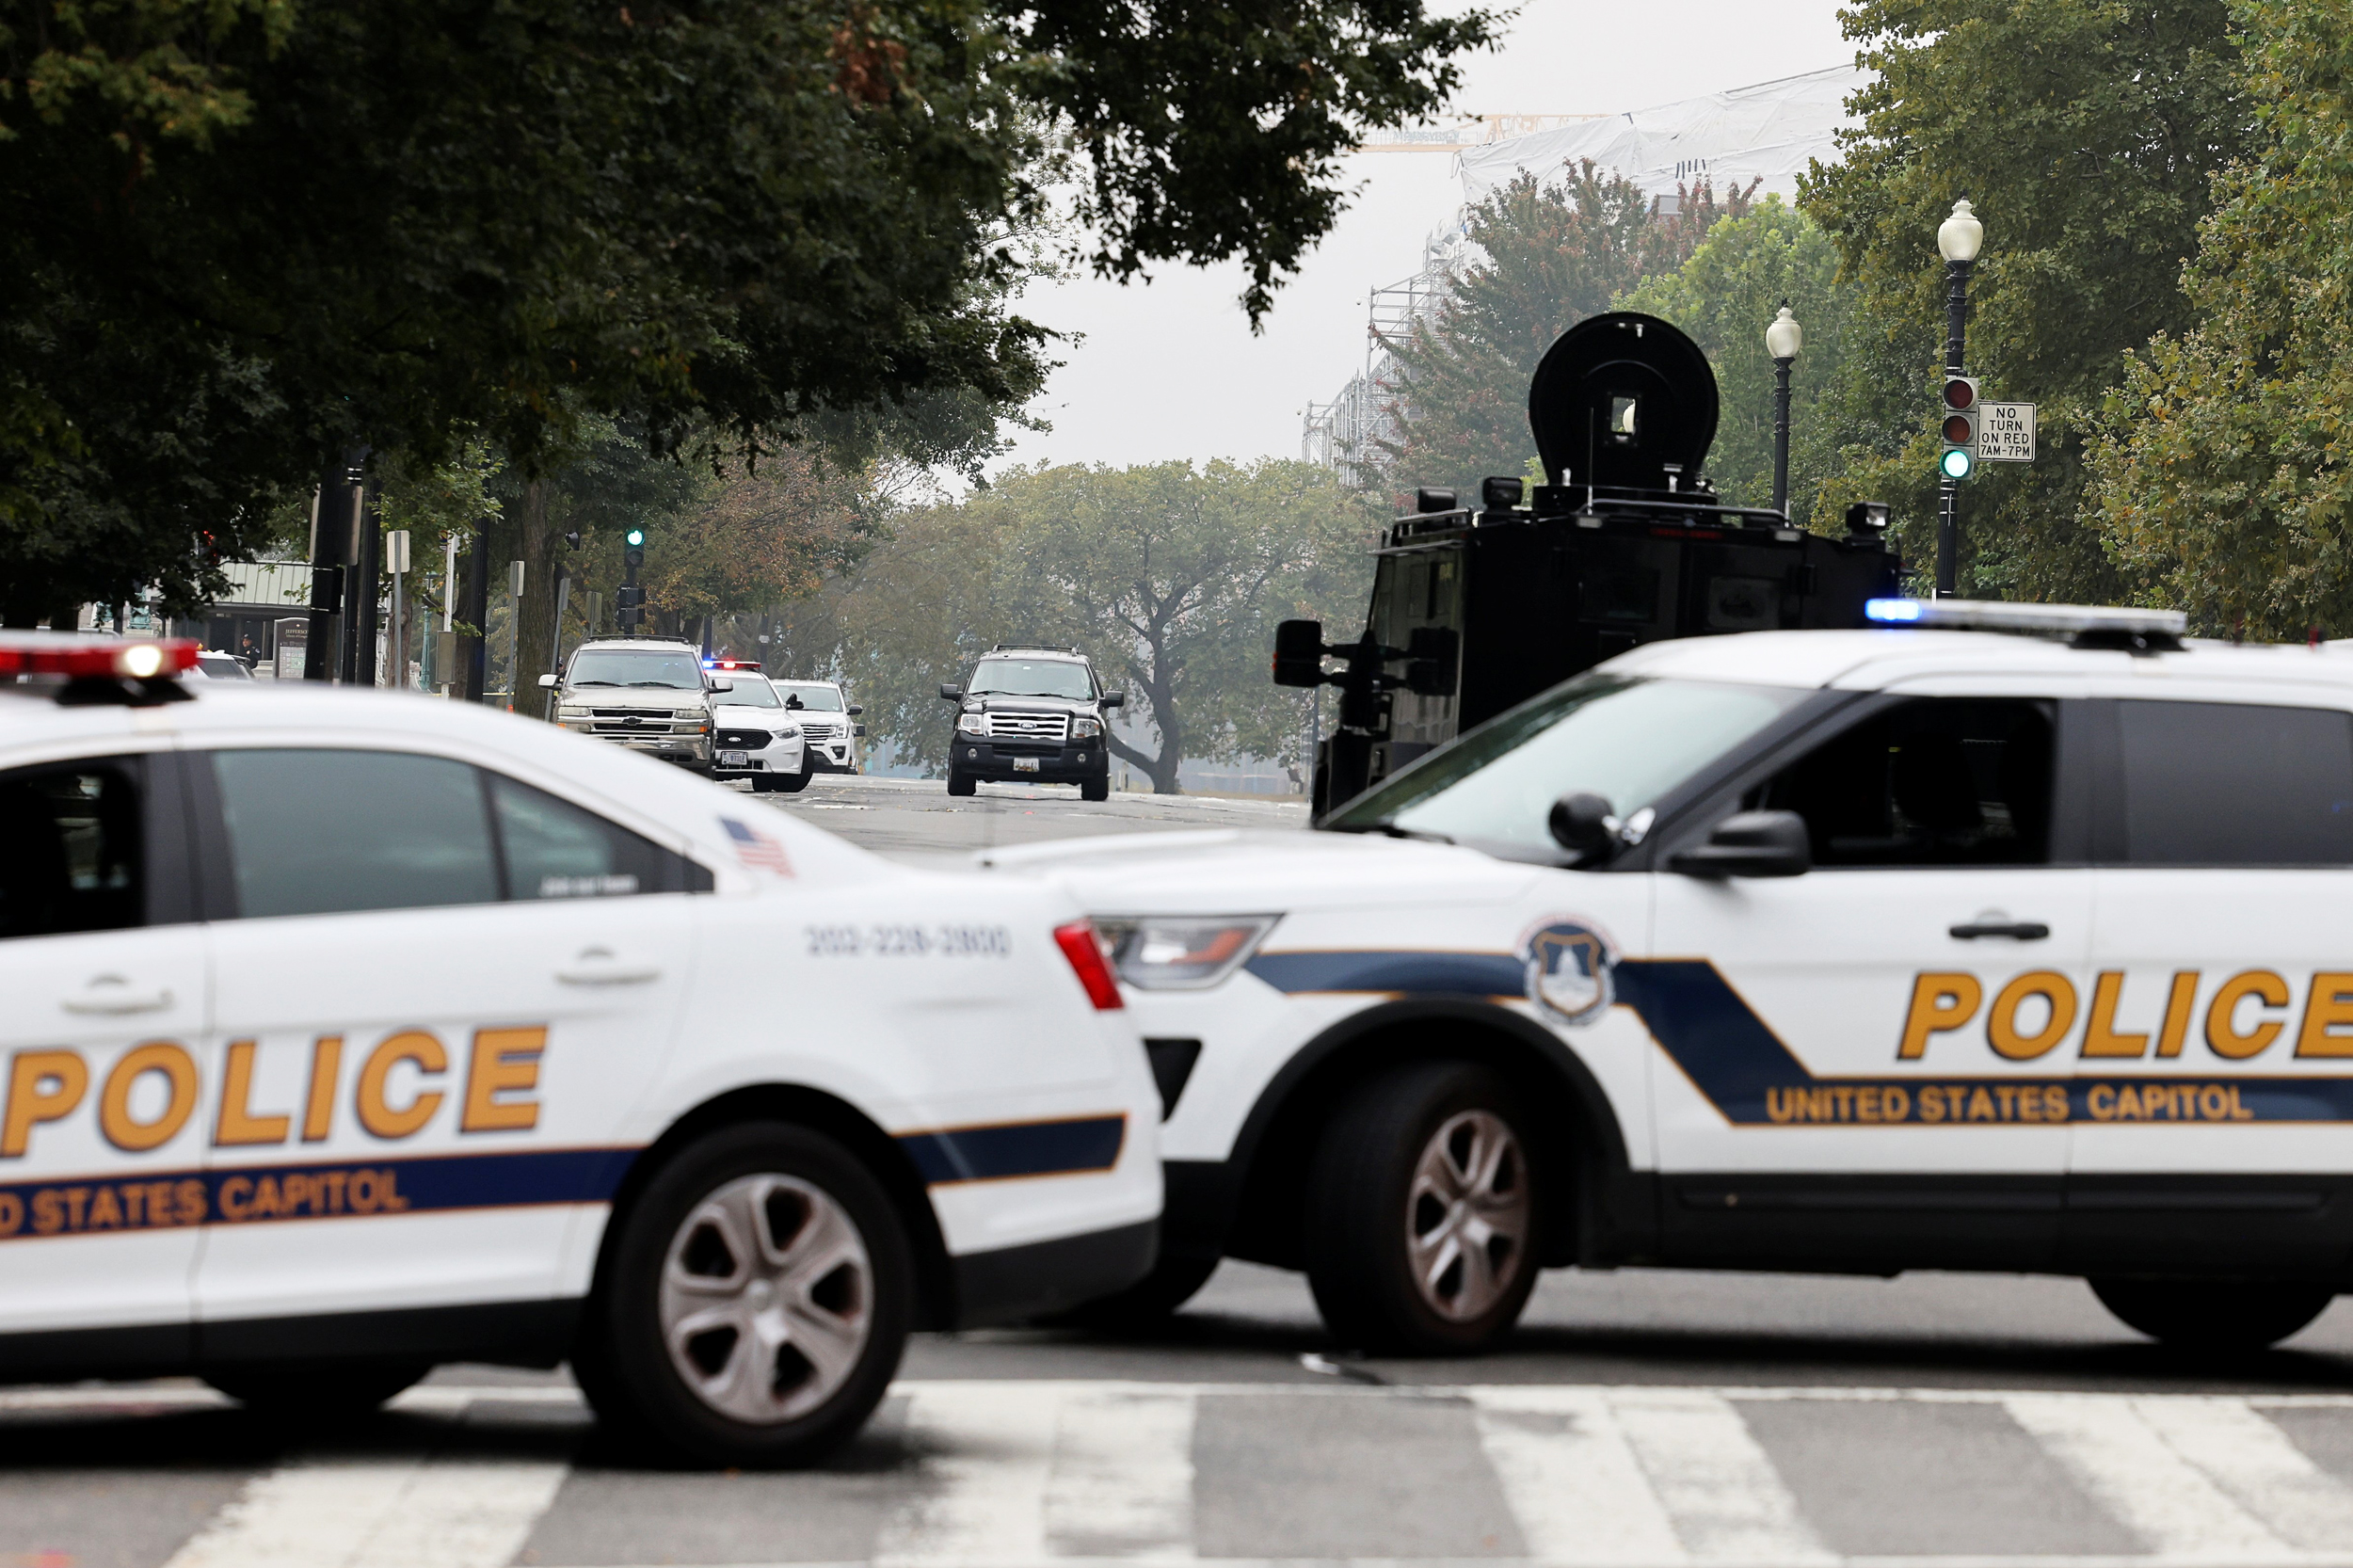 Capitol Police respond to 'suspicious vehicle' outside Supreme Court, officials say